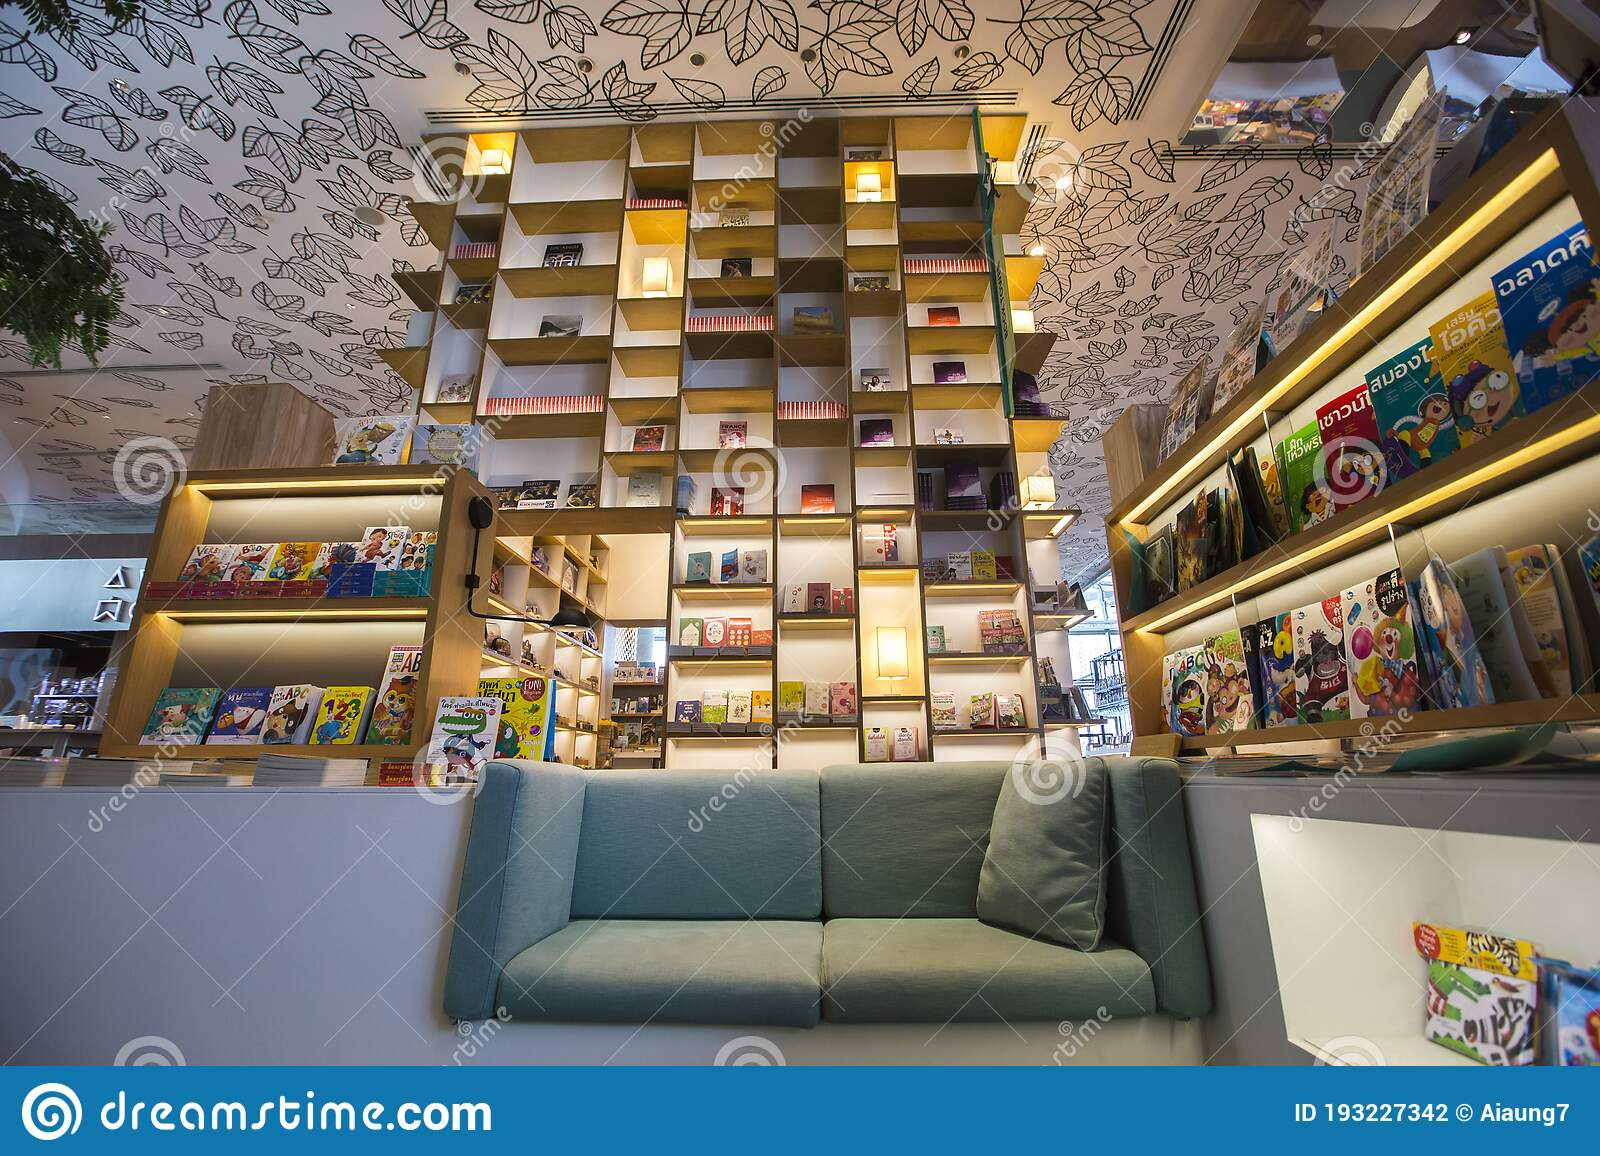 Bangkok Thailand August 7 2020 Trendy And Modern Bookstore High Bookshelf With Green Sofa Lights Painting Leaves On Ceiling Editorial Photography Image Of Ceiling Elegant 193227342